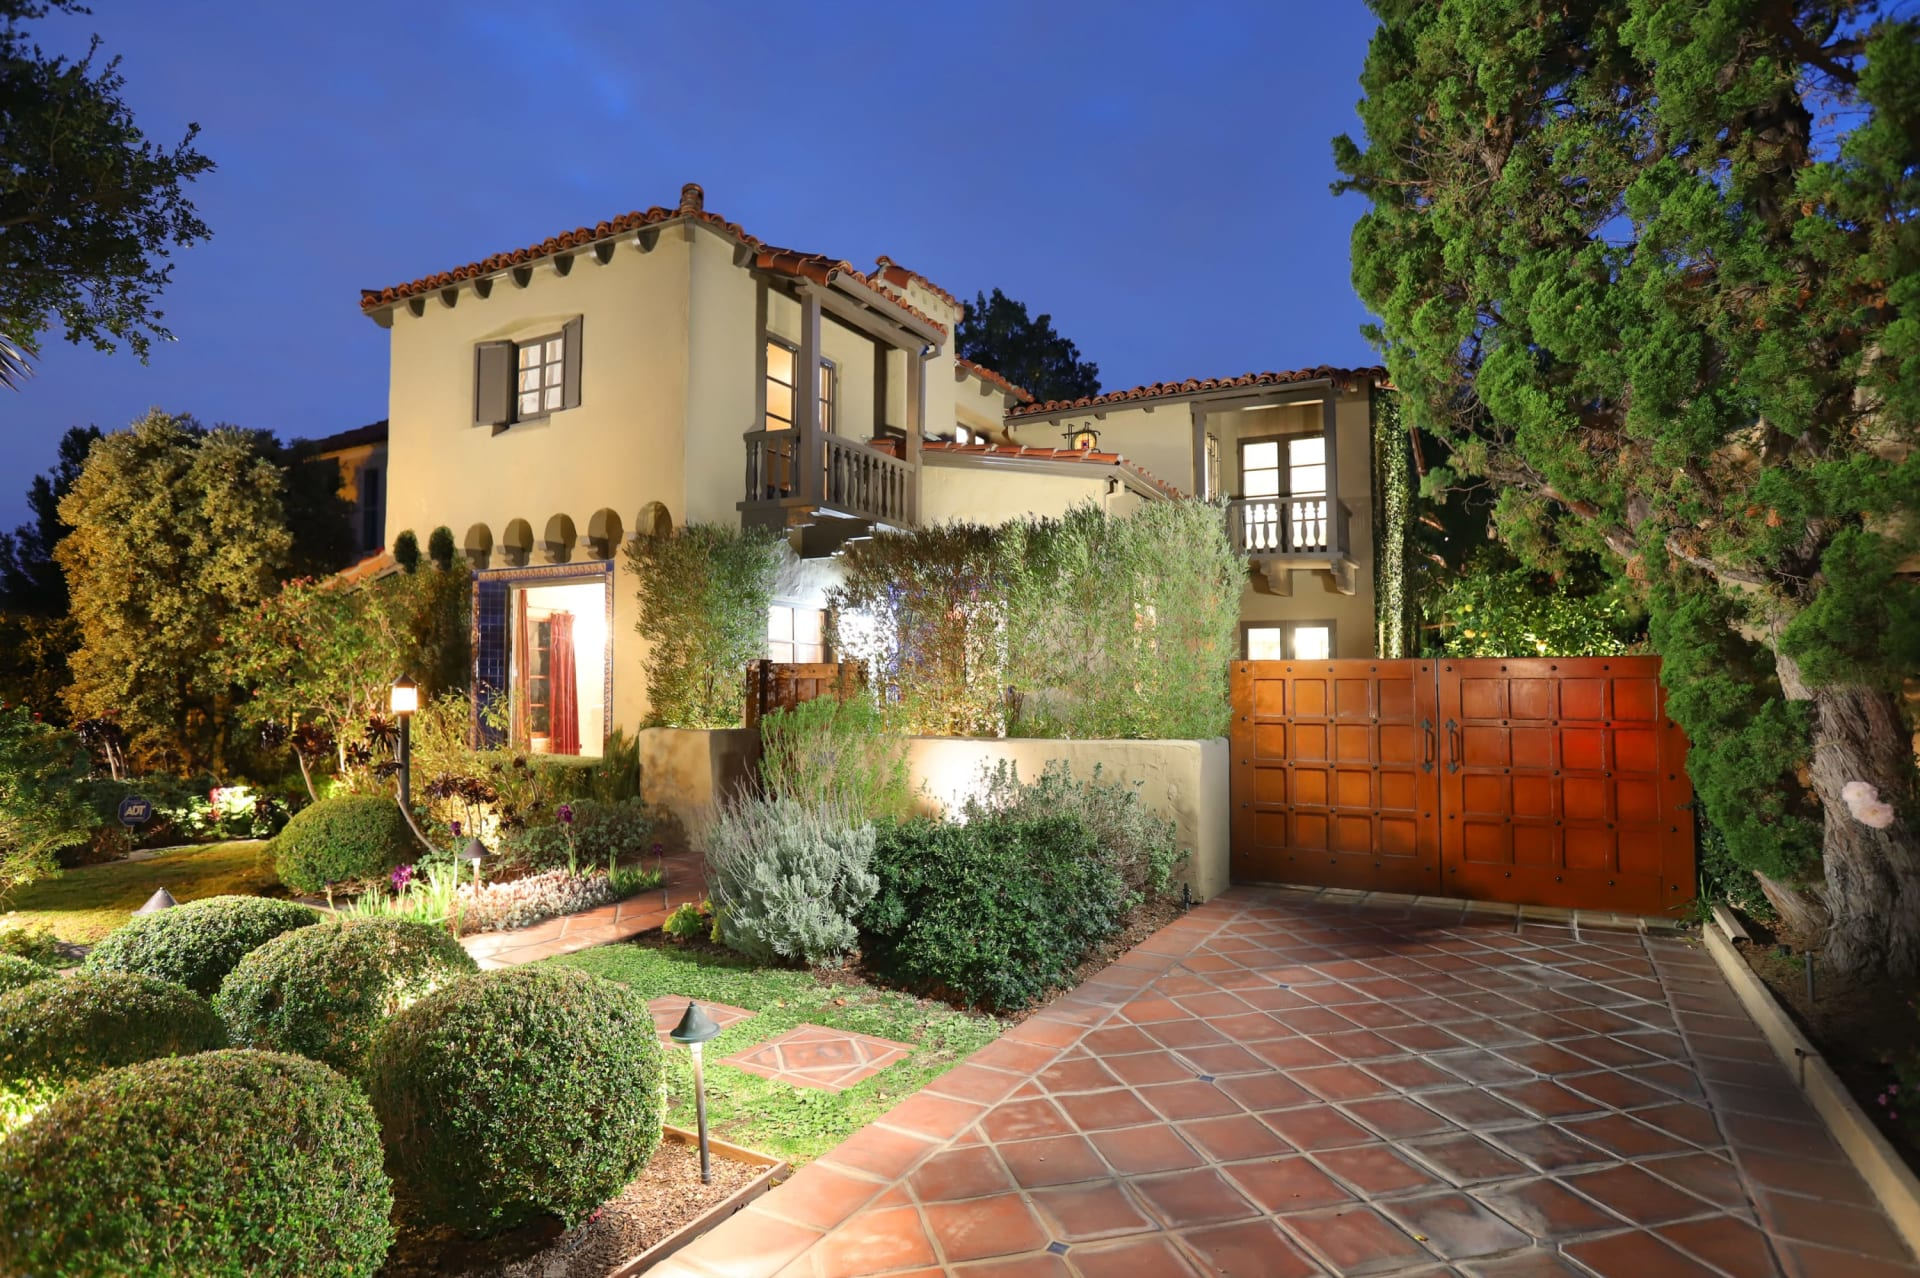 Sold by Edwin Ordubegian | 1209 Viscano Dr. | Glendale finest character home video preview